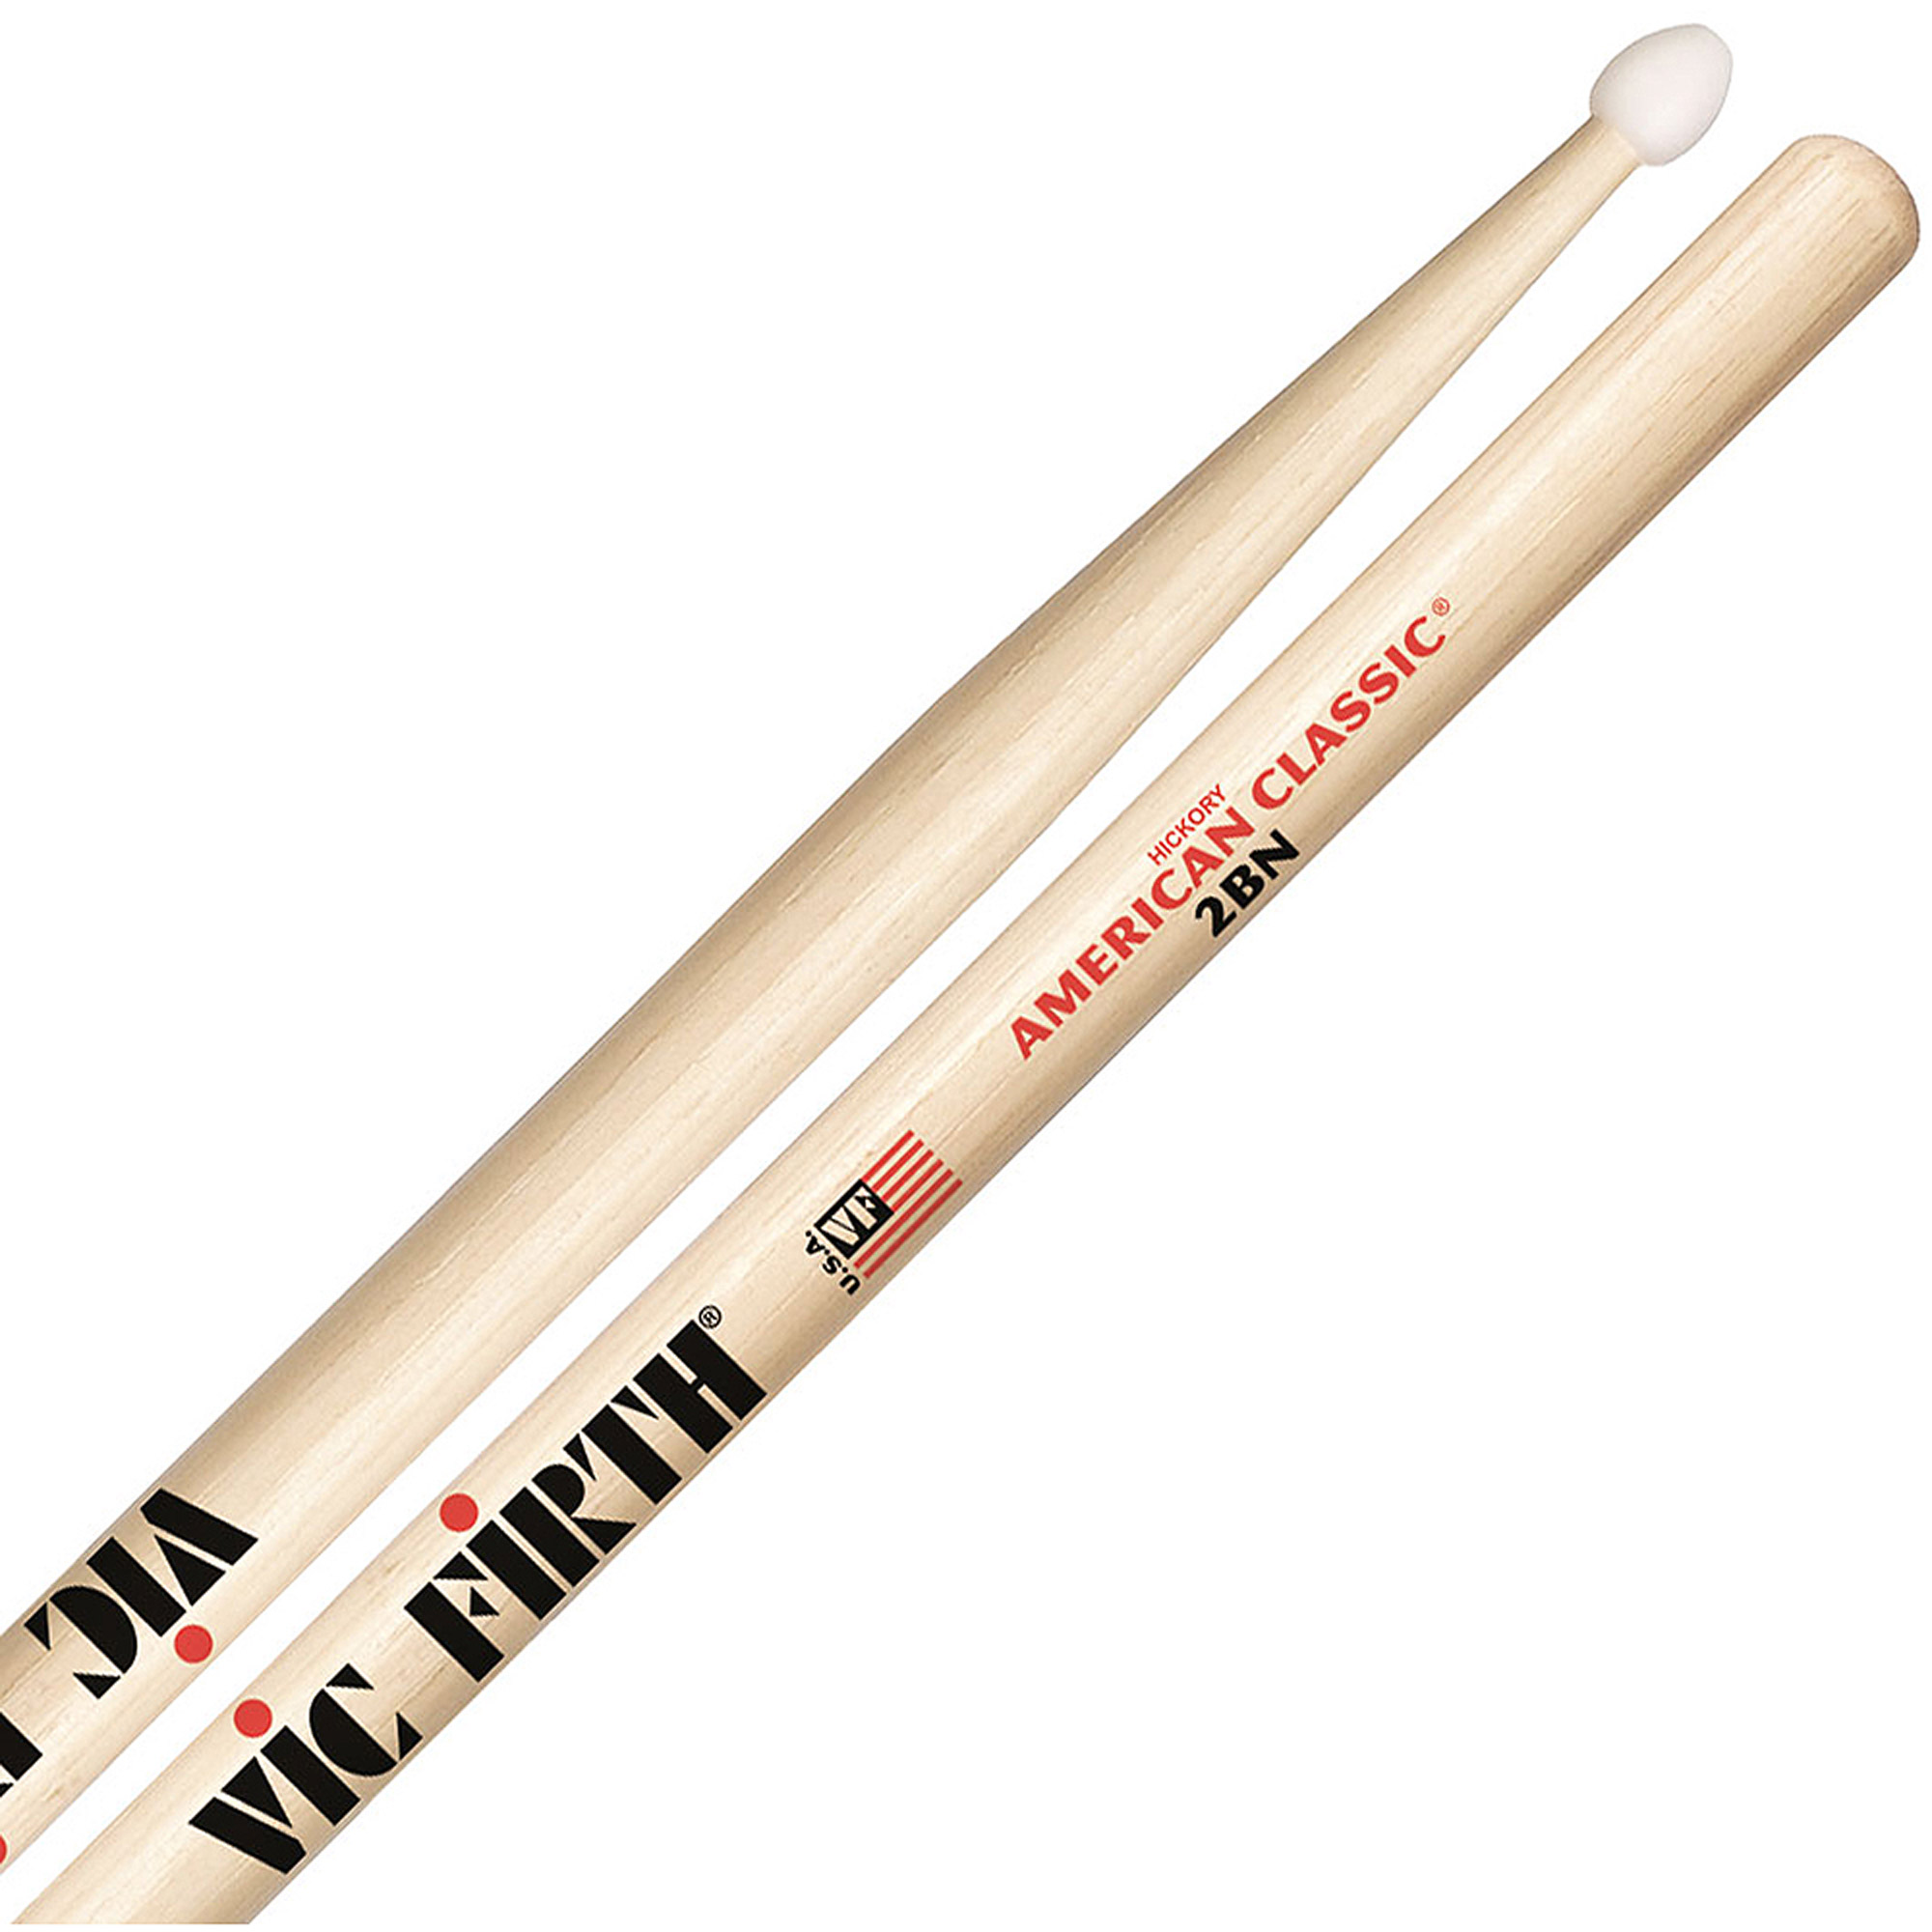 Vic Firth American Classic 2BN Nylon Tip Hickory Drumsticks by Vic Firth